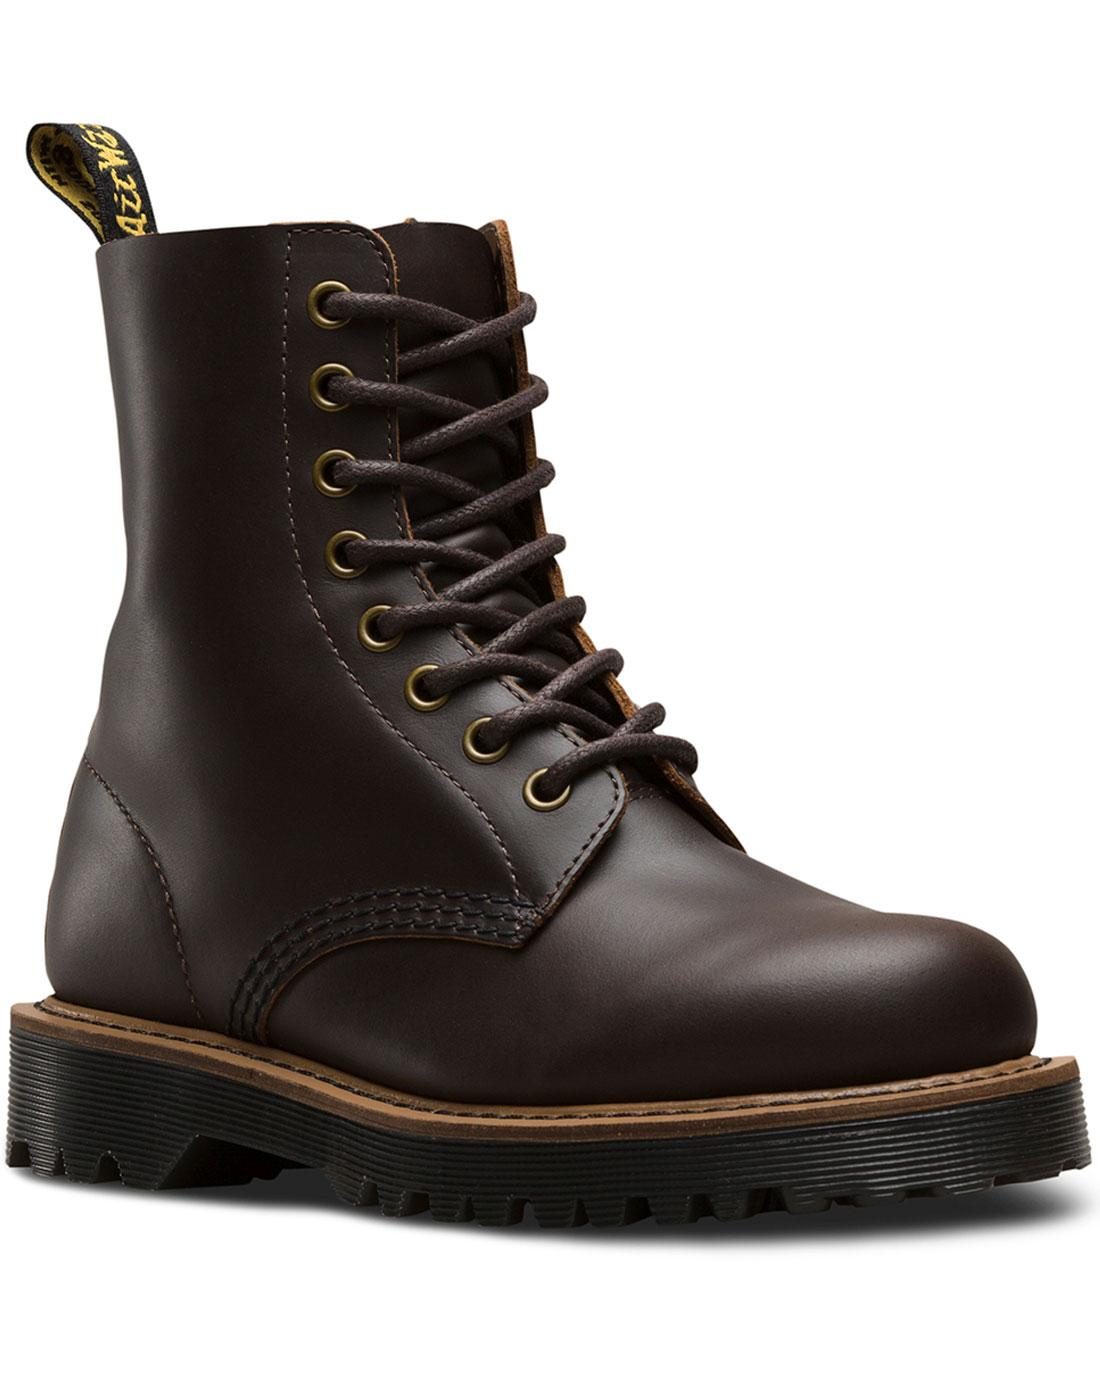 Pascal II DR MARTENS Retro Mod Montelupo Boots DB